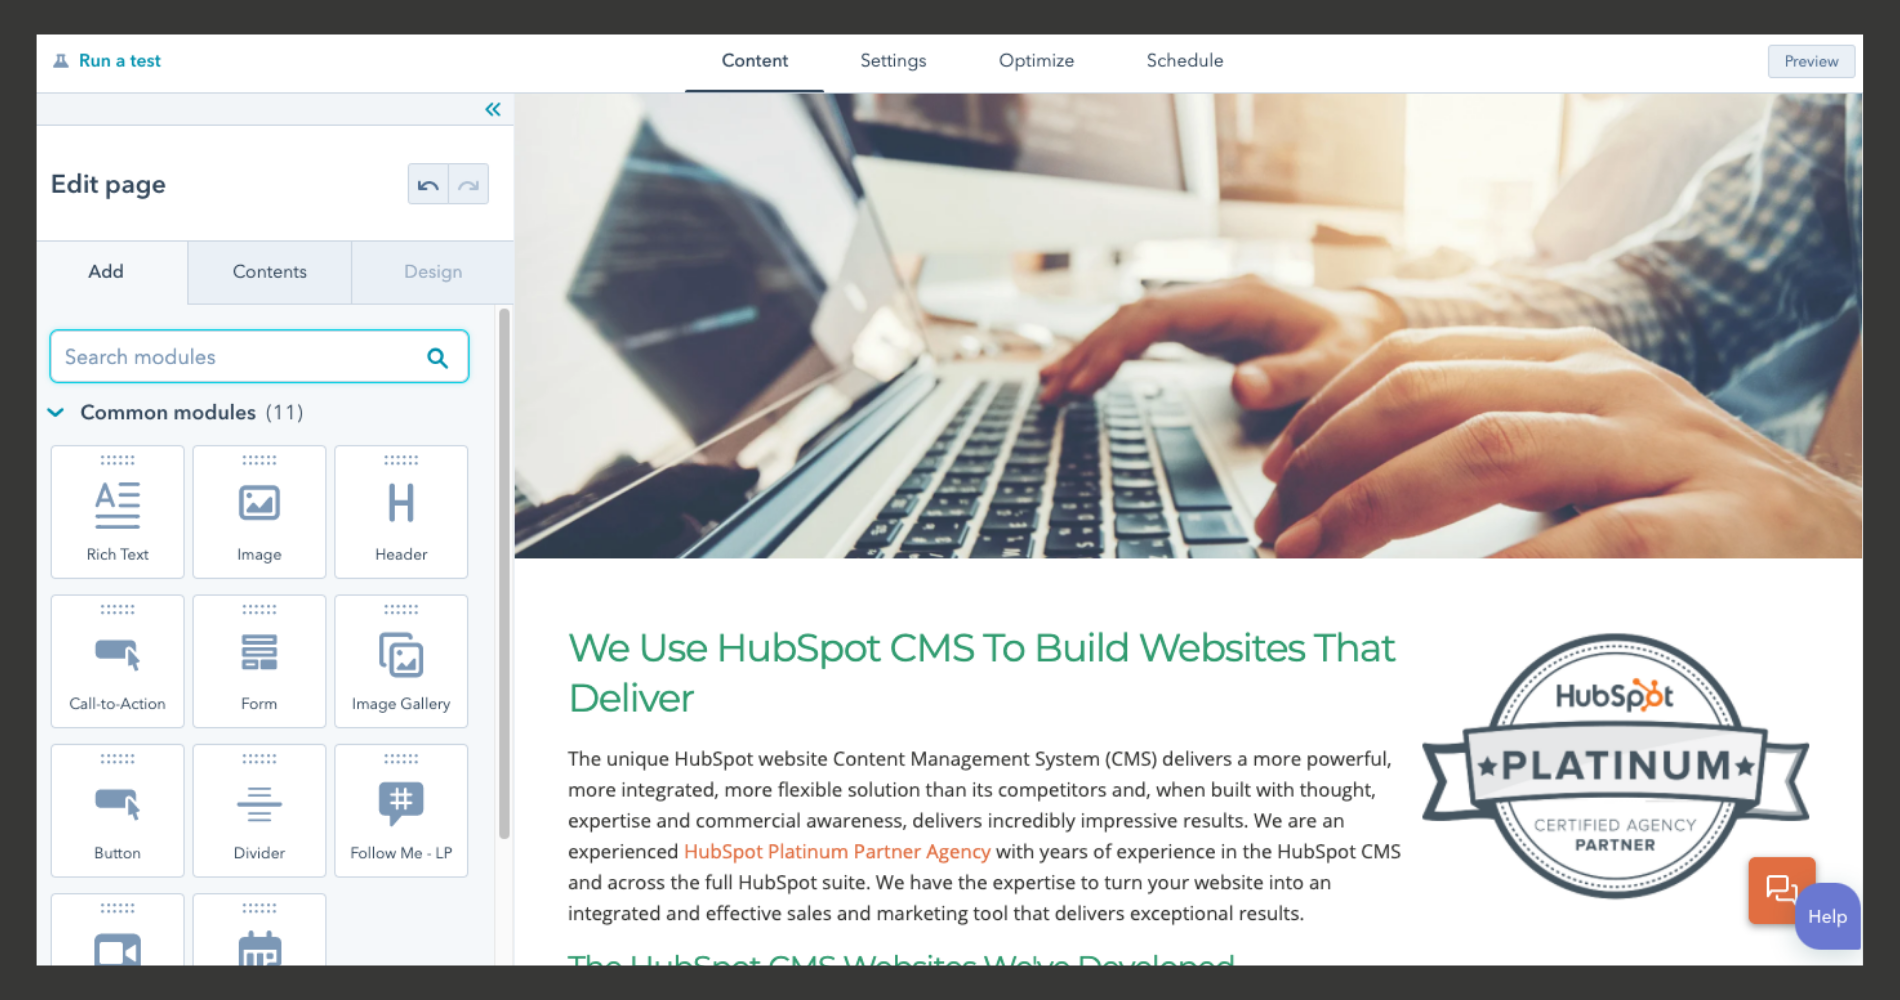 Screenshot of intuitive HubSpot CMS interface